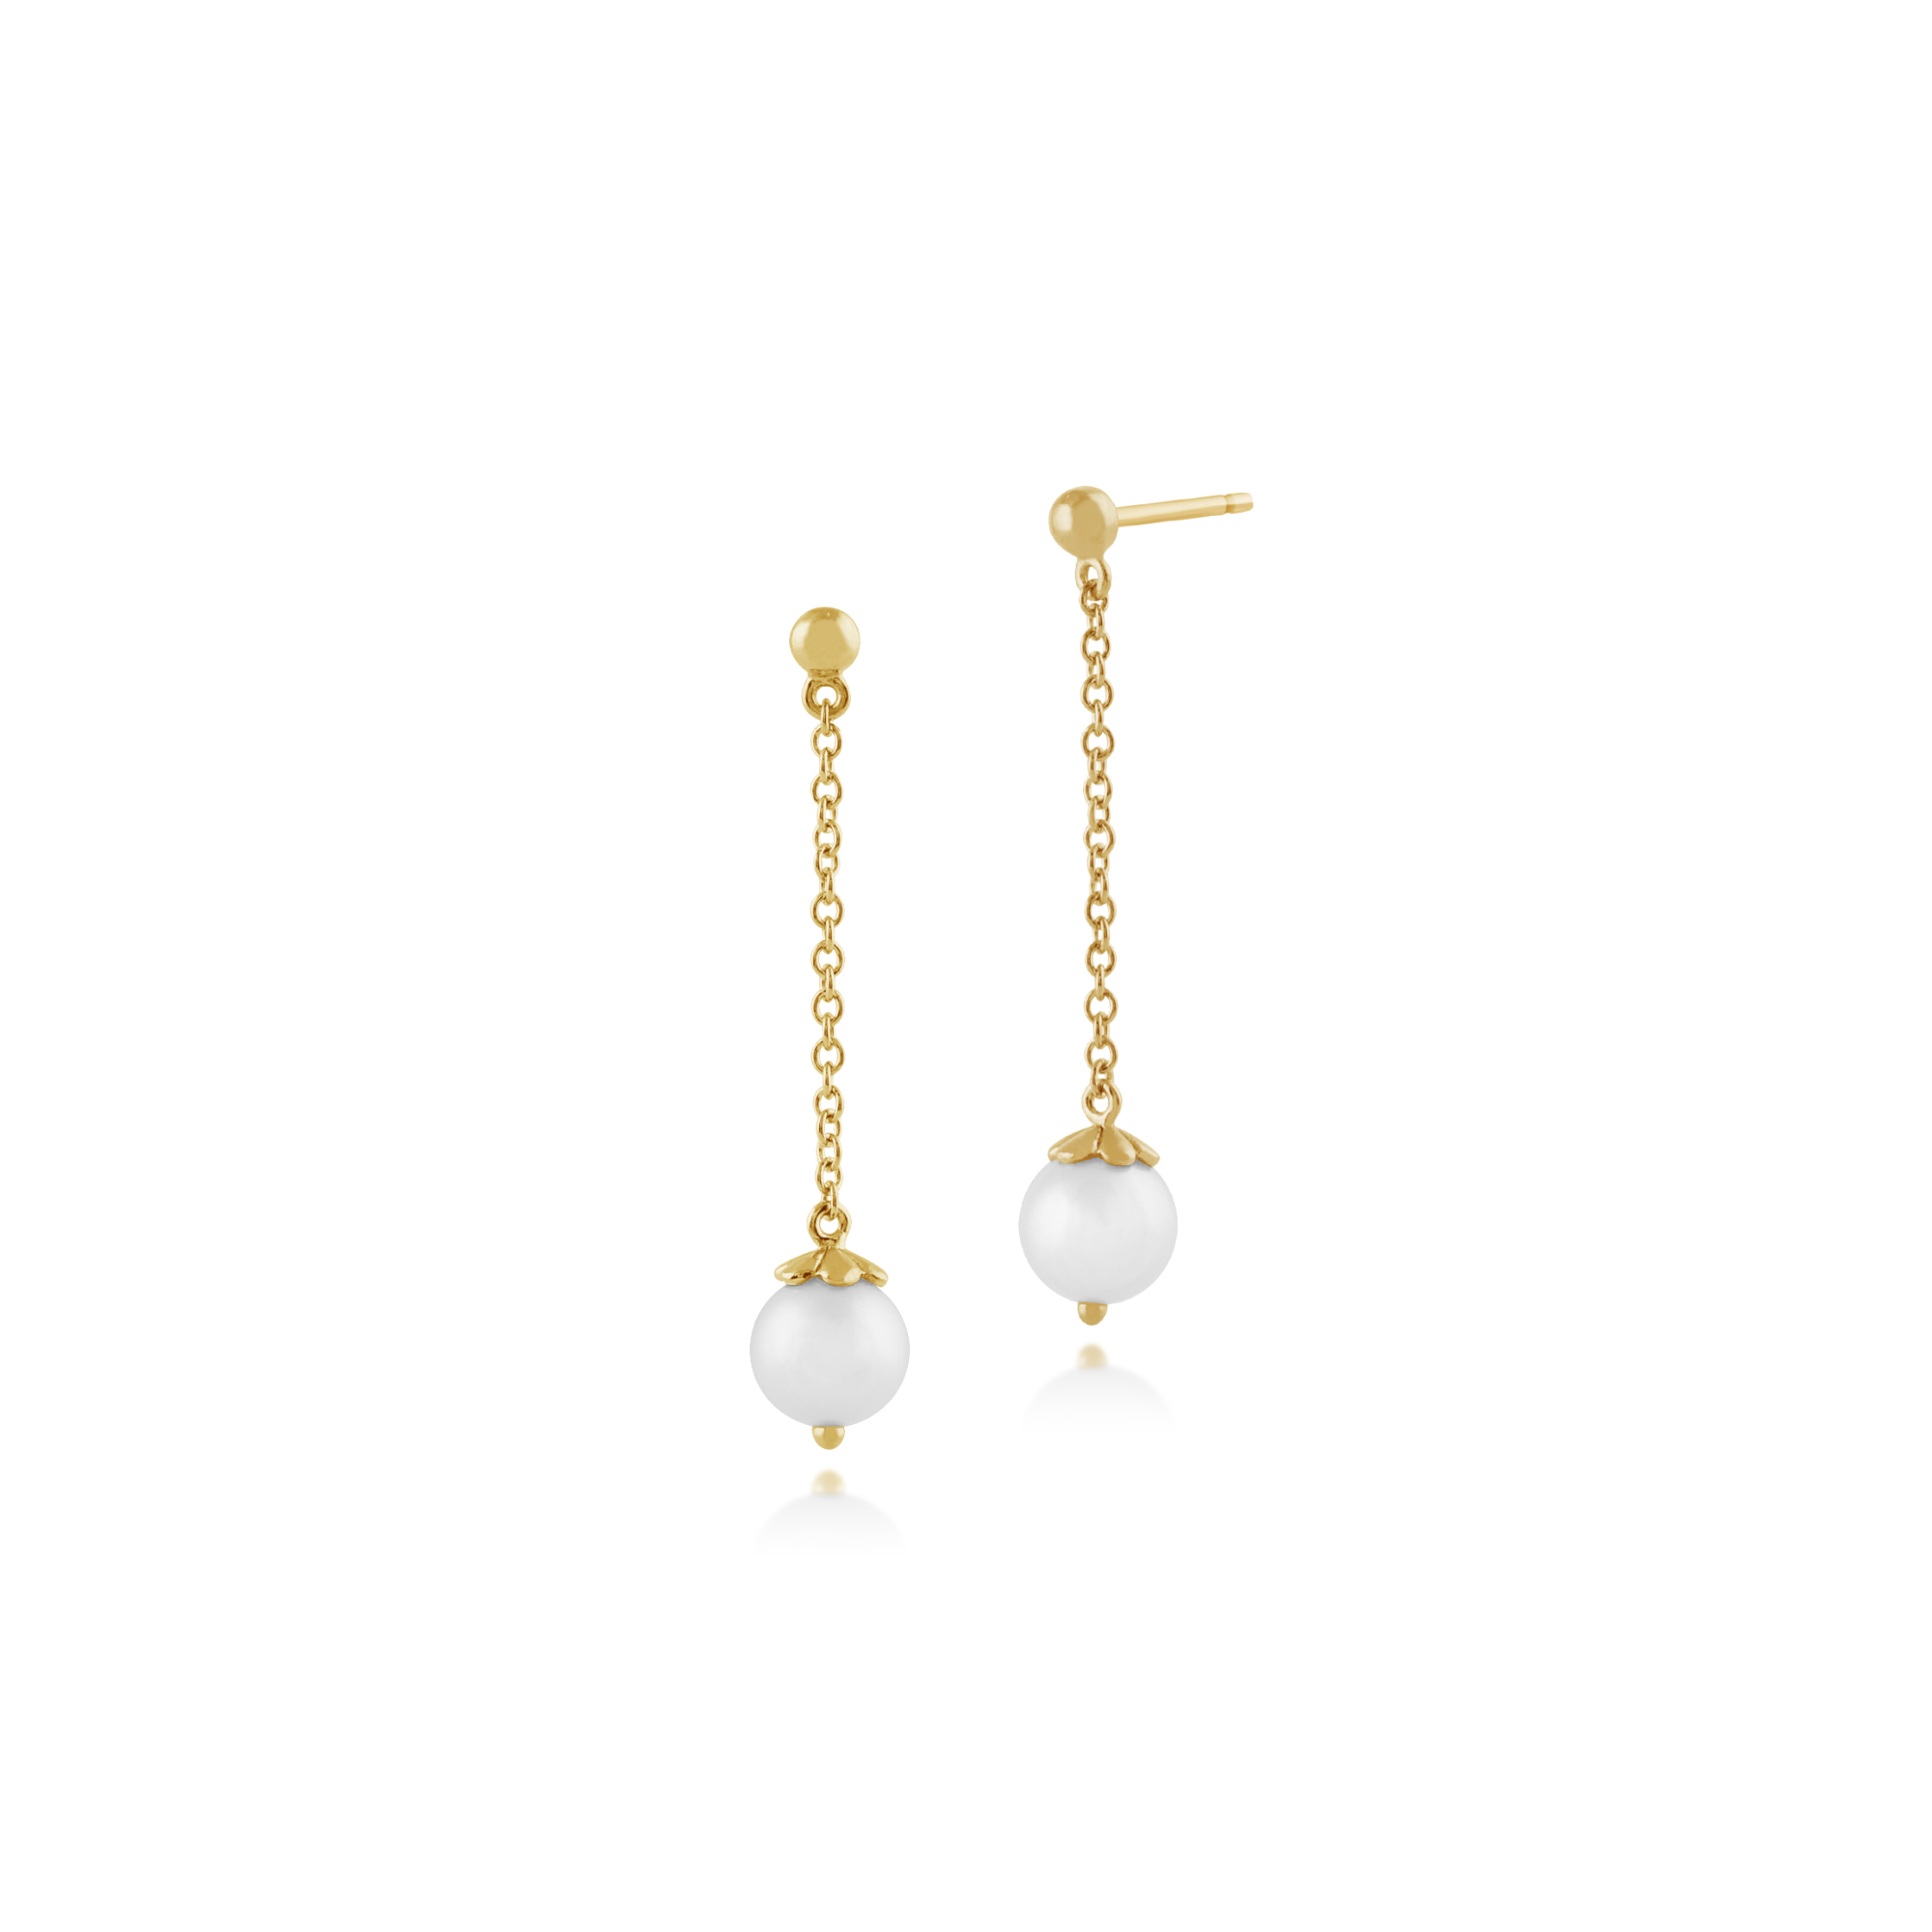 Gemondo 925 Gold Plated Sterling Silver 2.28ct Freshwater Pearl Drop Earrings